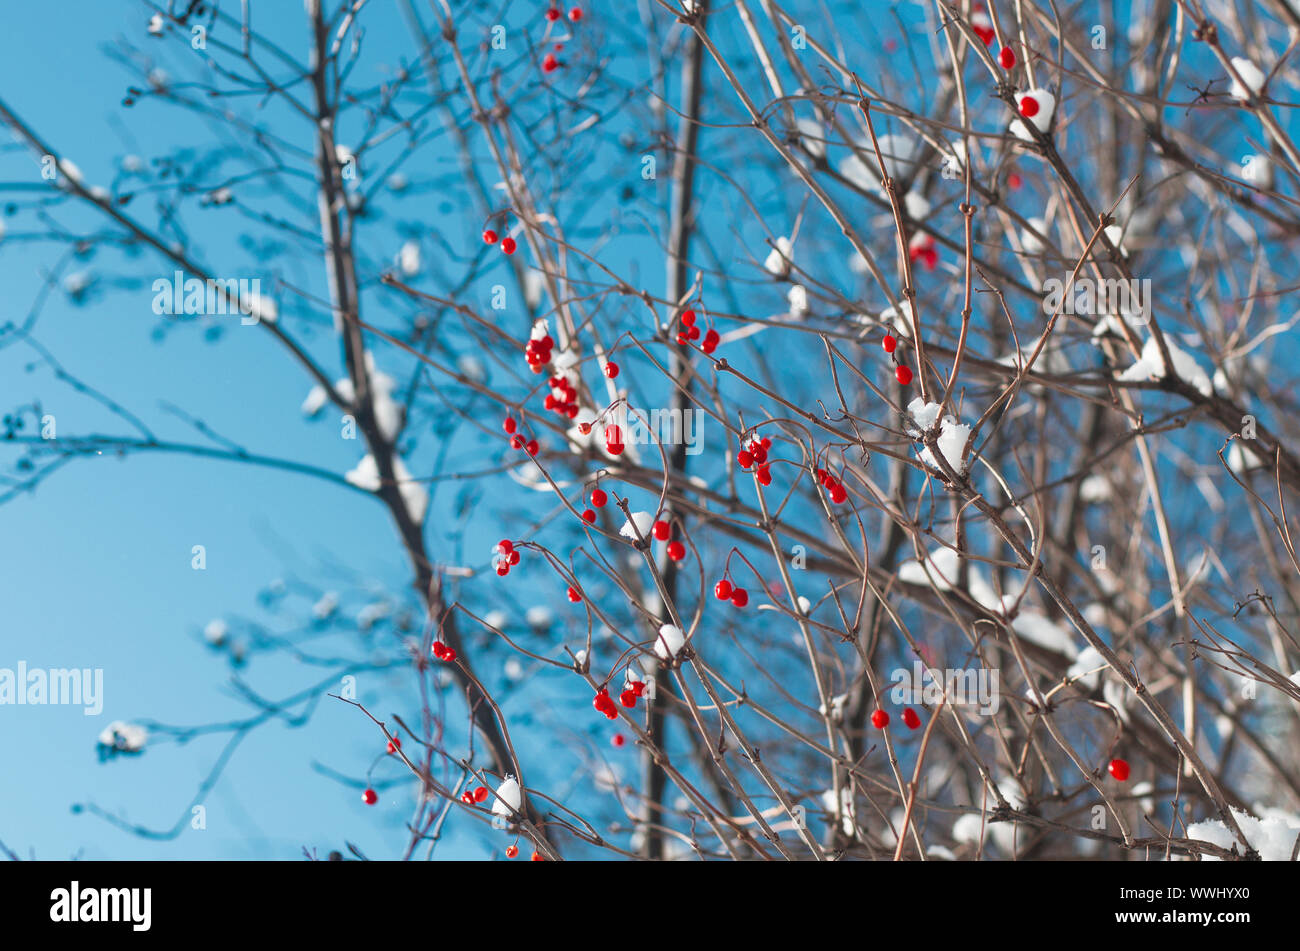 Ripe vividly red berries viburnum on the branches covered with white snow closeup Stock Photo